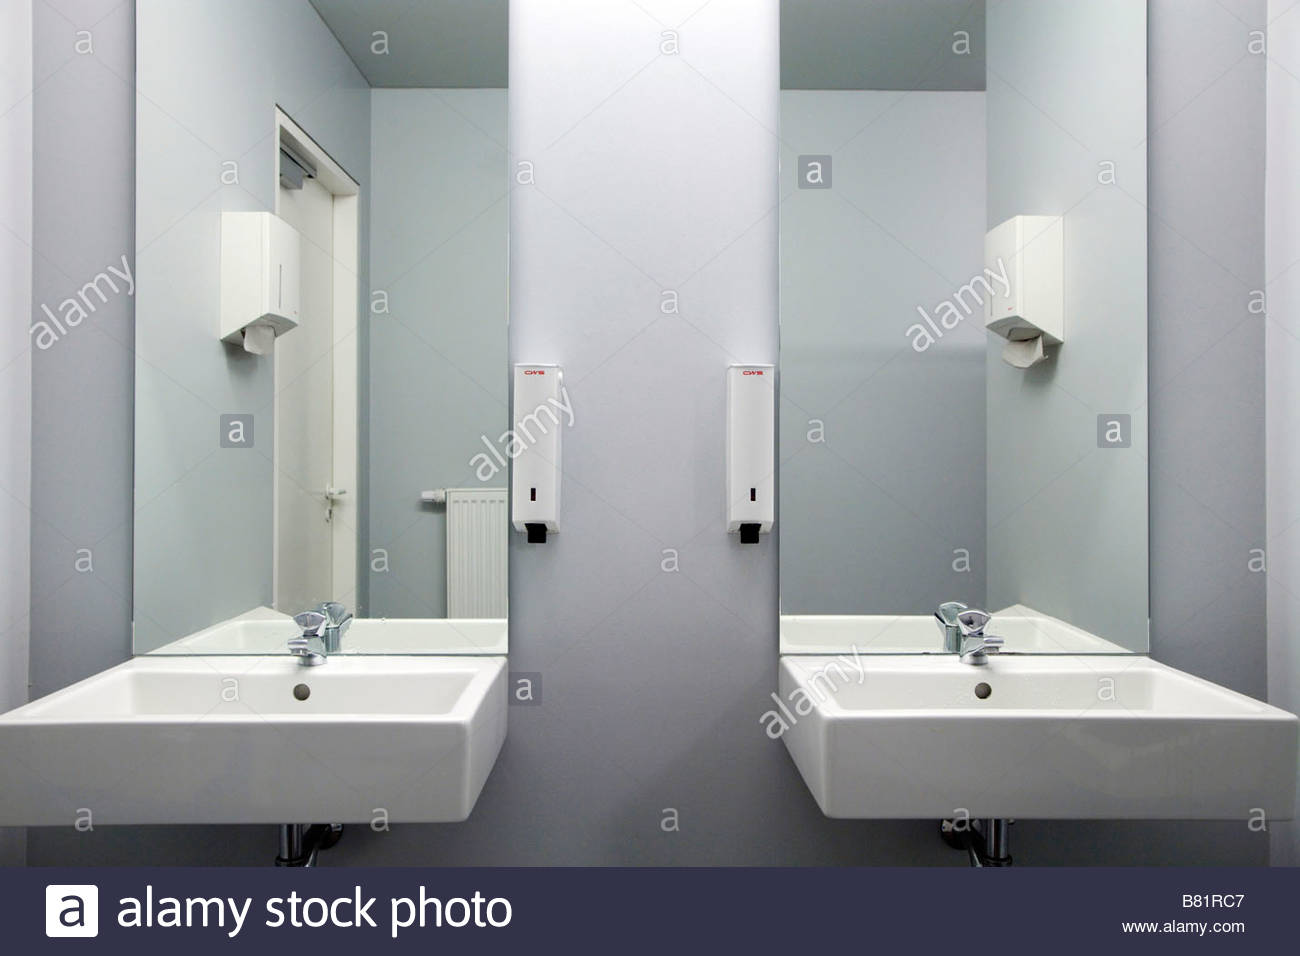 public bathroom sink with faucet paper towel and soap dispenser ...